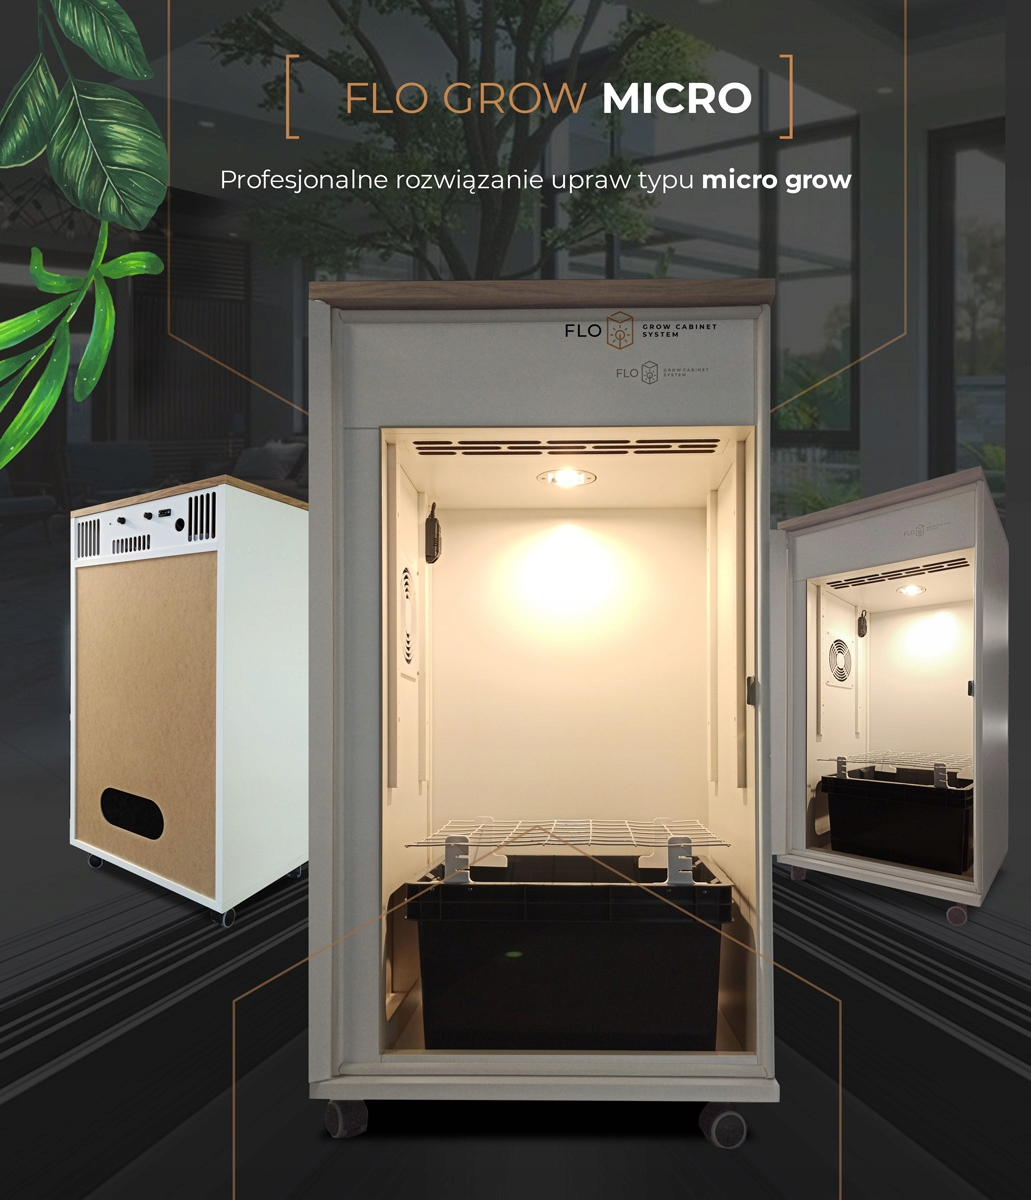 growbox FLO GROW MICRO 2.0 cabinet system indoor